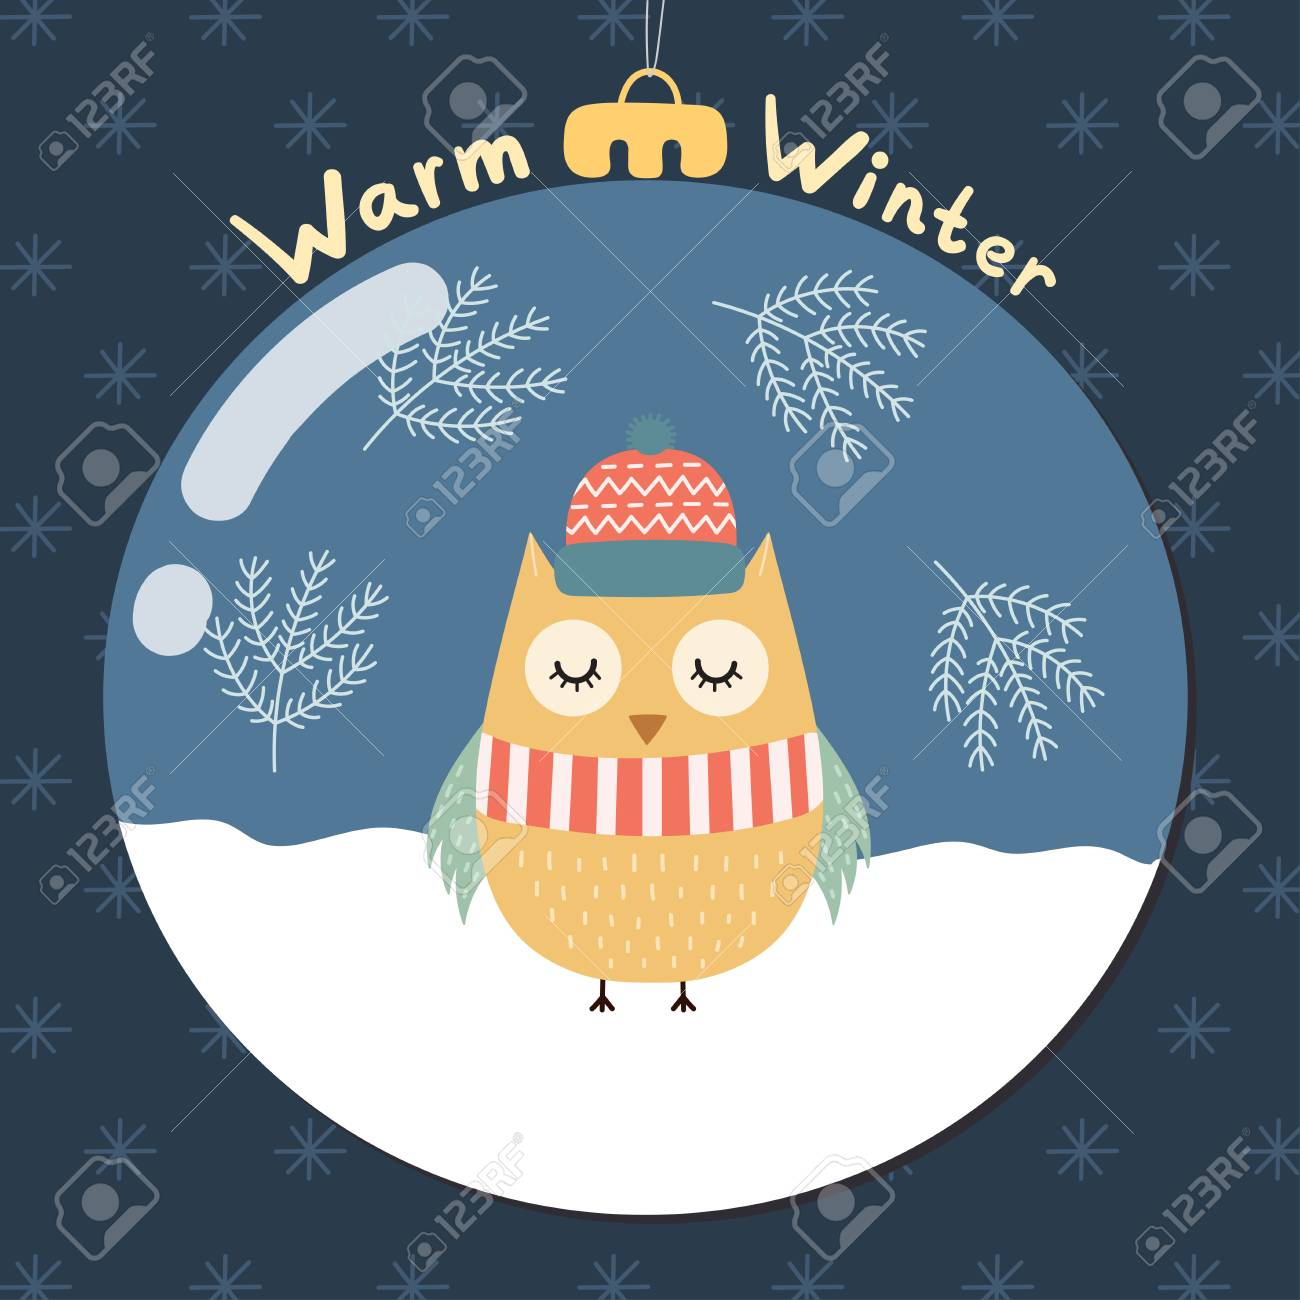 Warm Winter Greeting Card With A Cute Owl Inside A Glass Ball